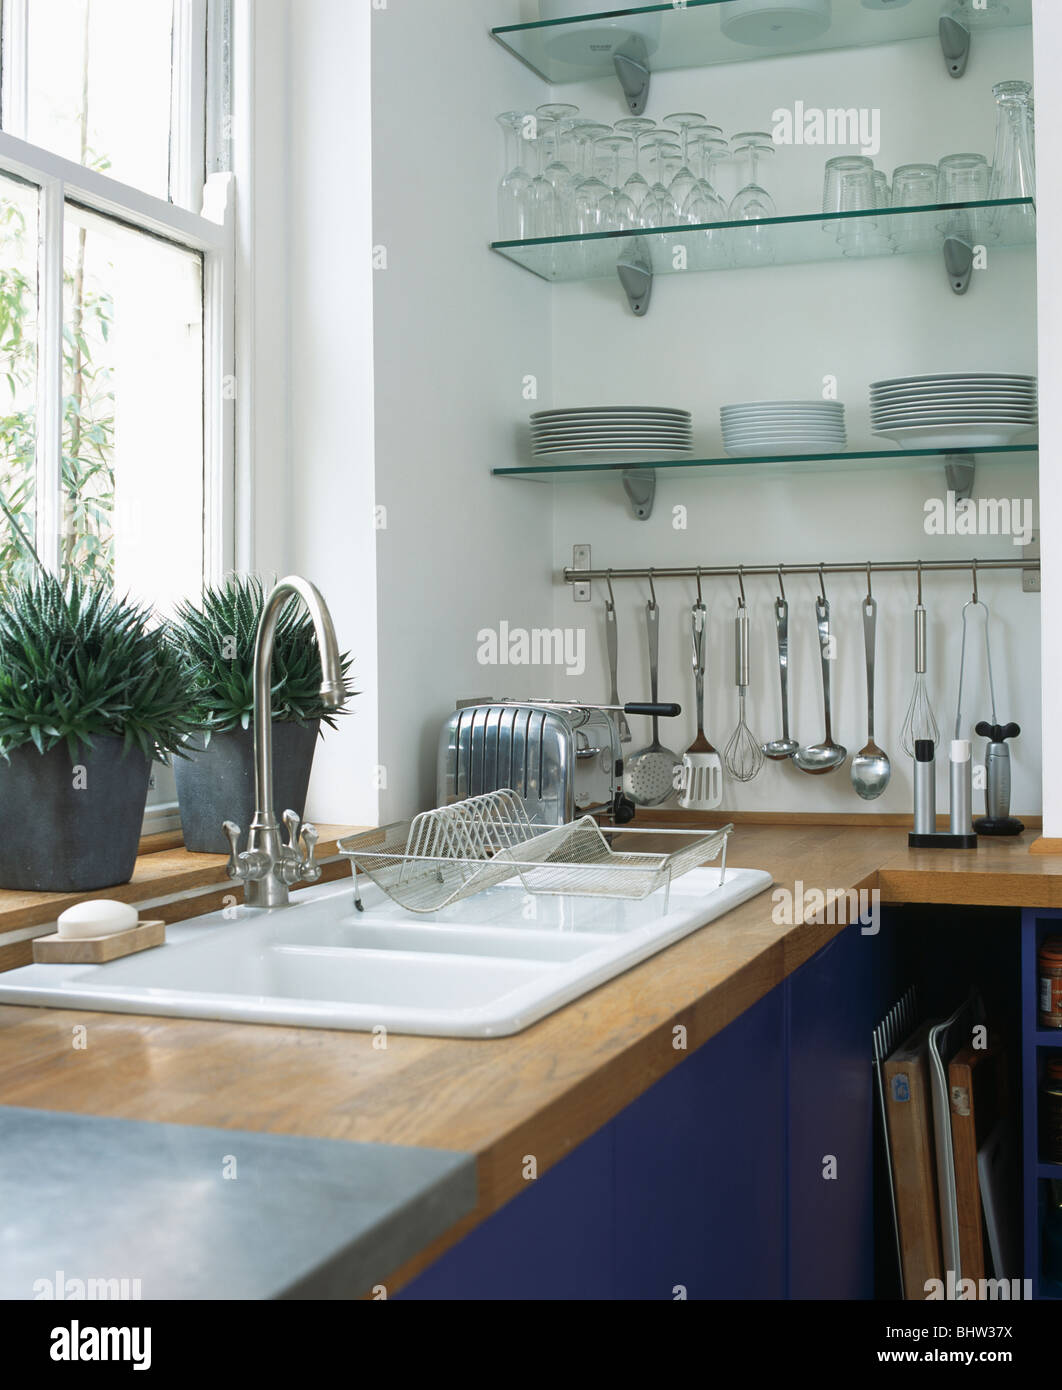 Large Kitchen Canisters Shelves Above Kitchen Sink Stock Photos Amp Shelves Above